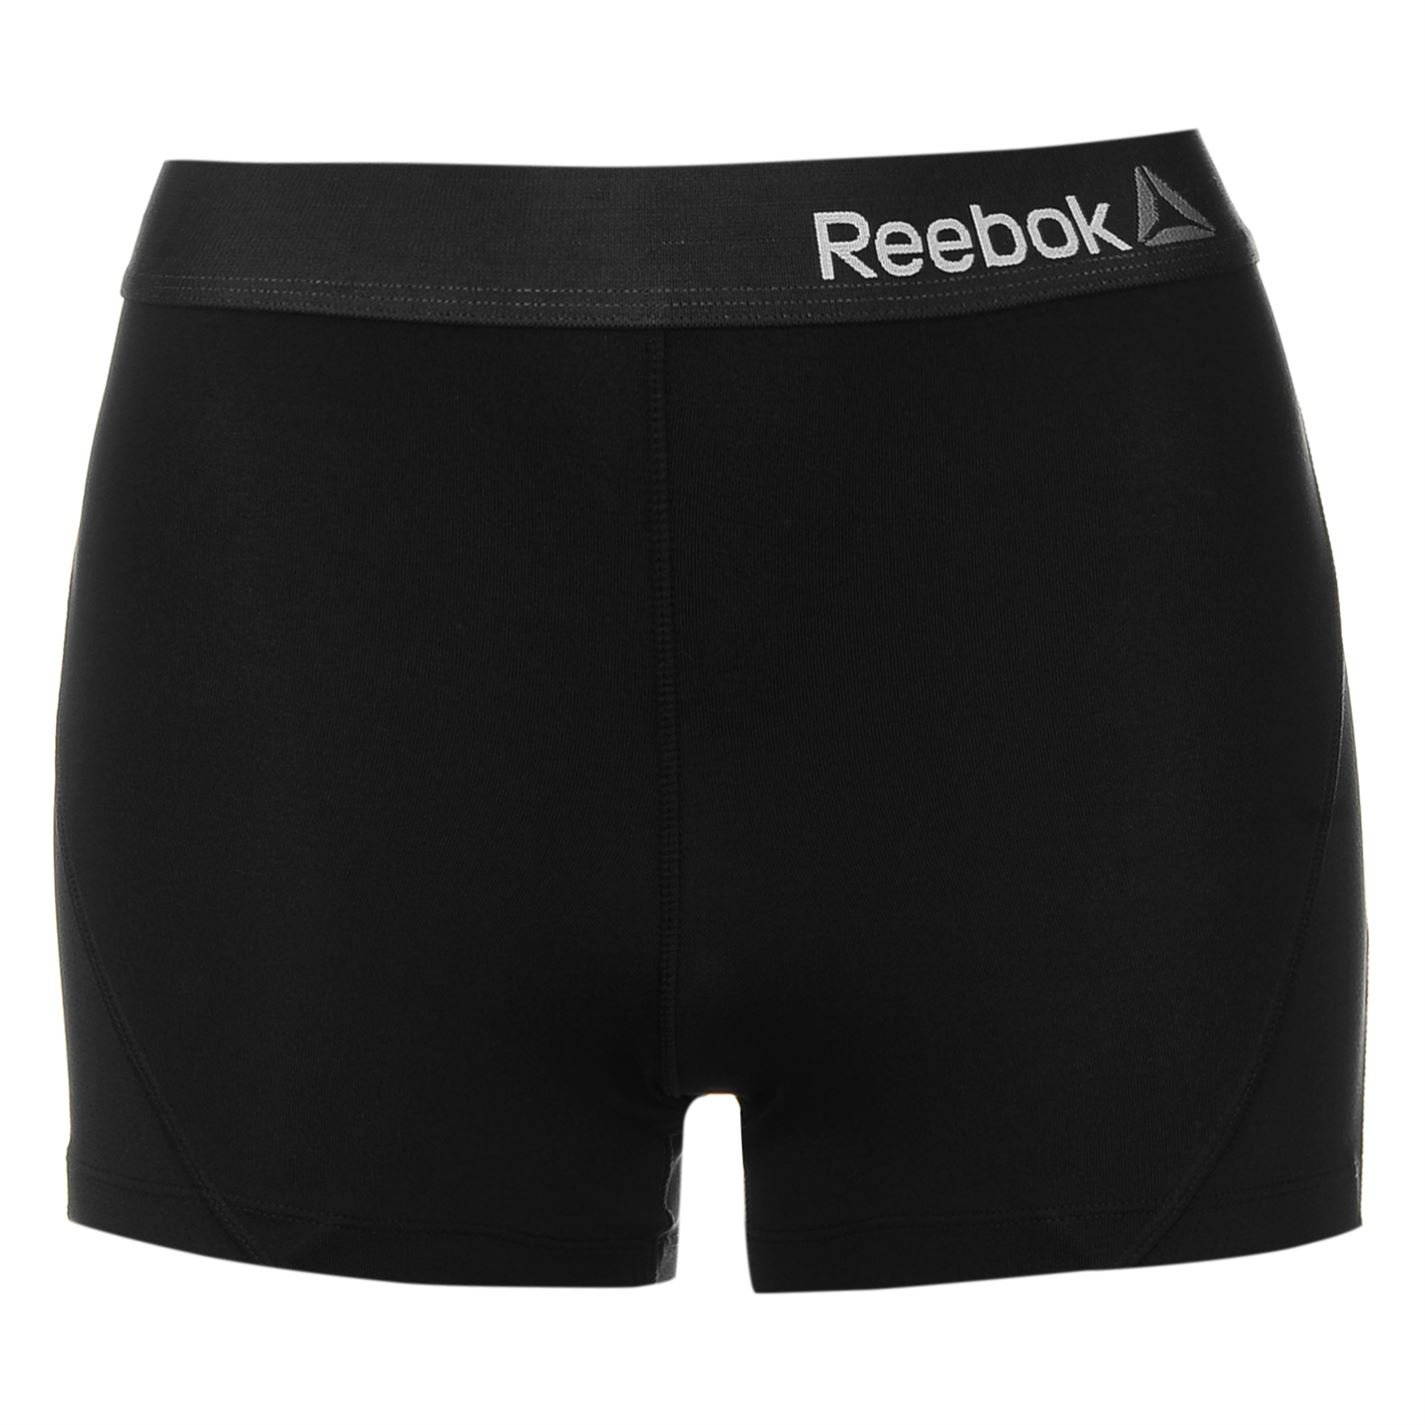 Reebok Damen-Joyner Unterwäsche POWERPLAY BRANDS EXTERNAL U4_C9303_RBK